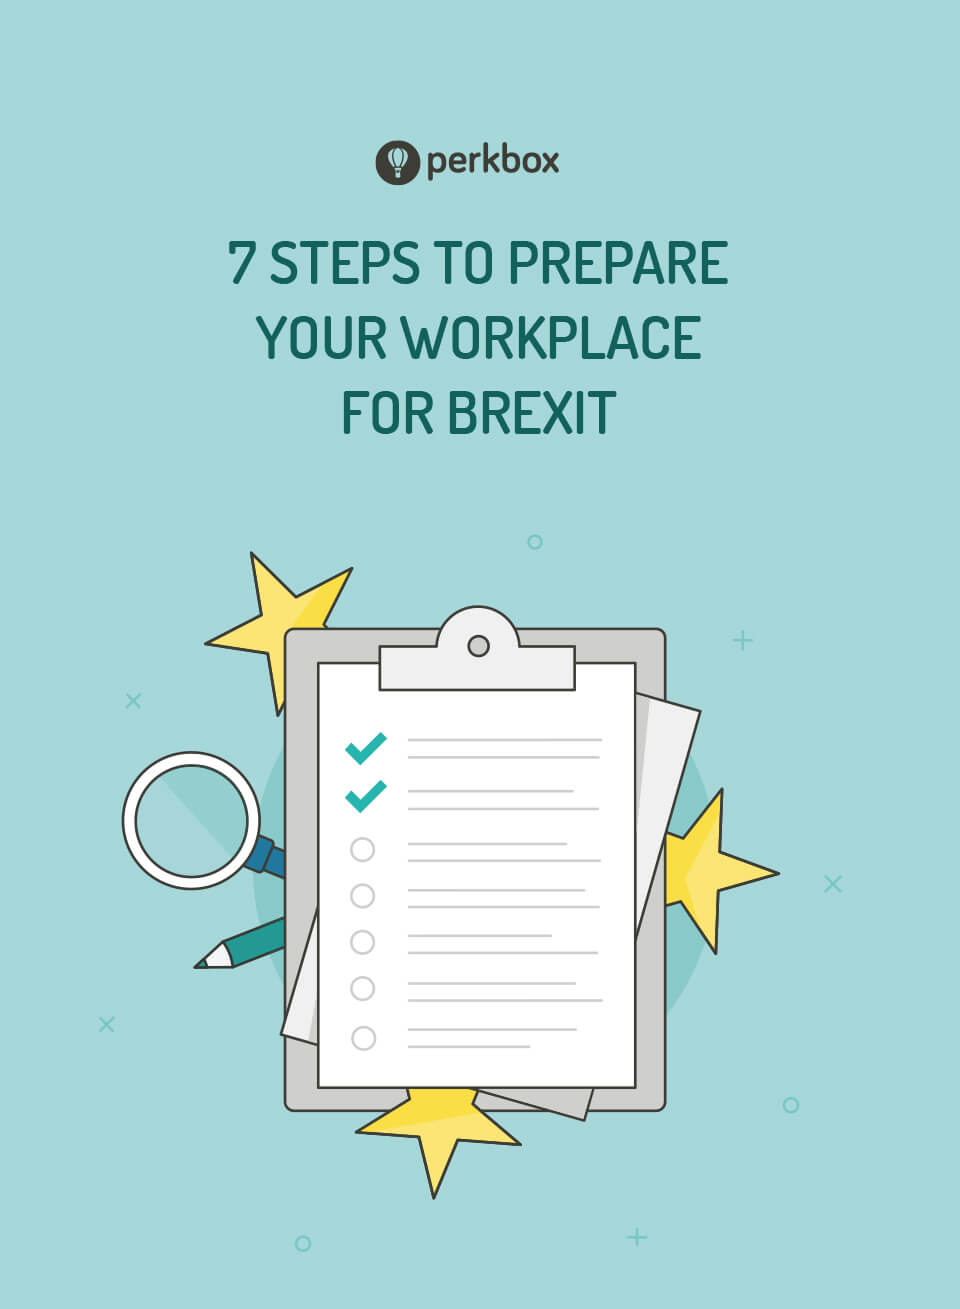 7 Steps to Prepare your Workplace for Brexit